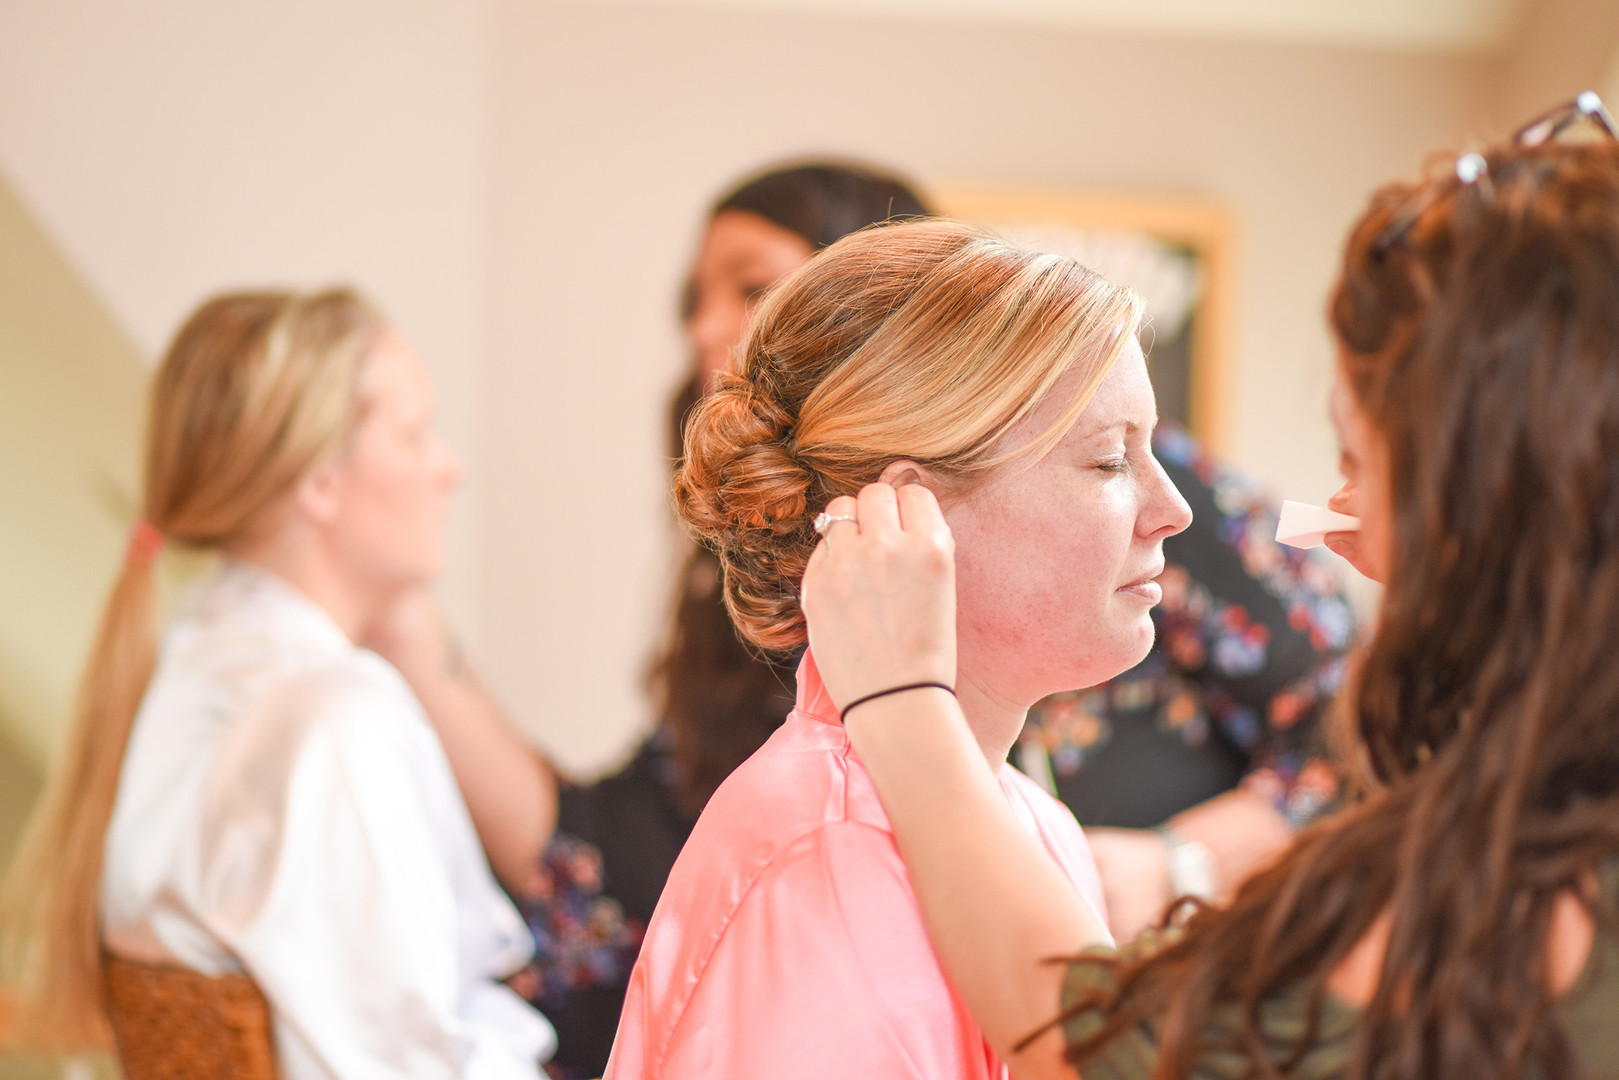 Makeup artist doing bridesmaid's makeup